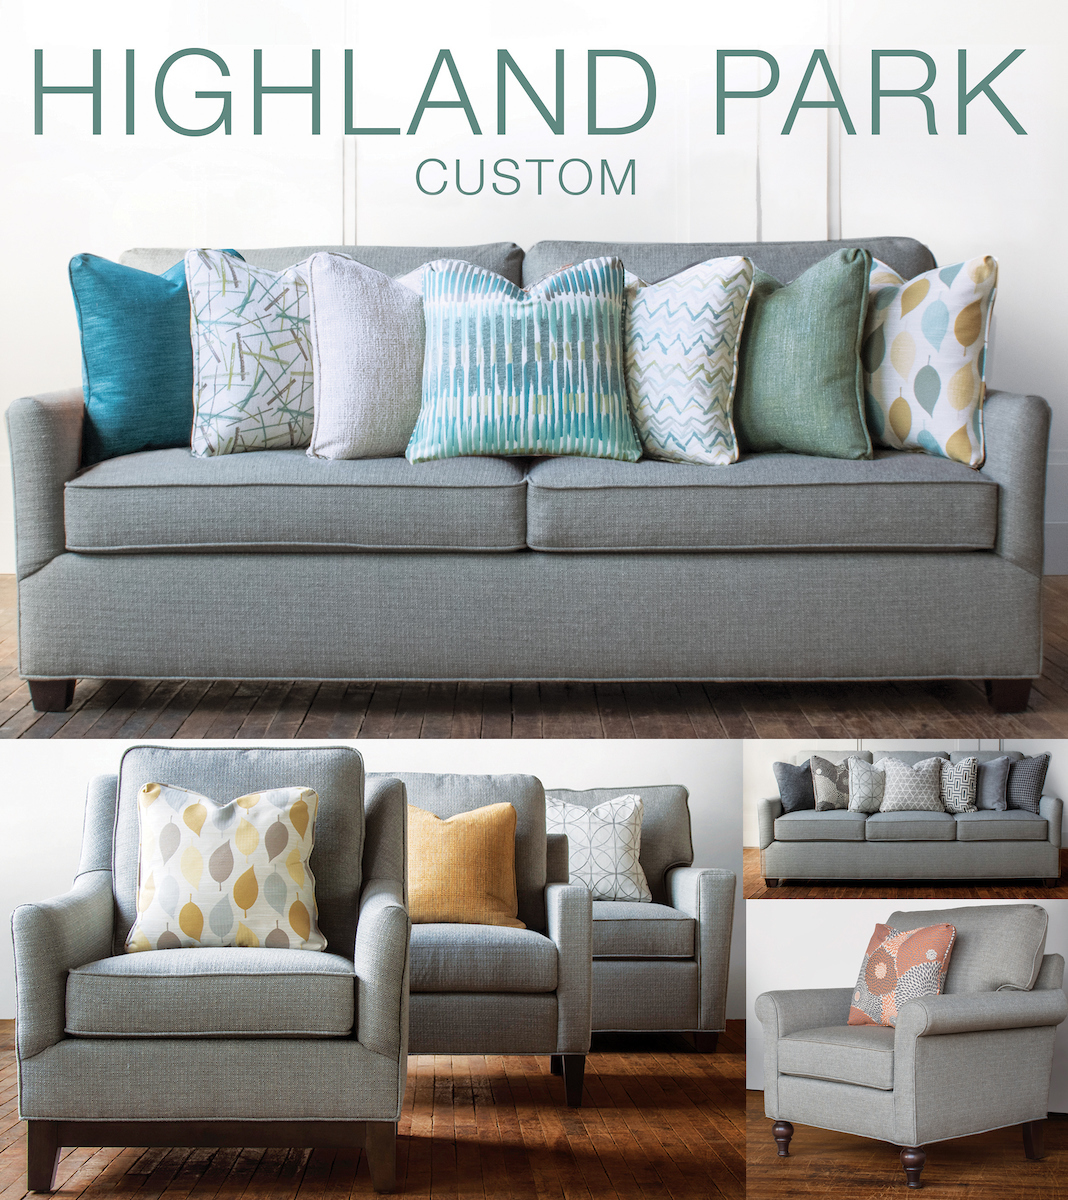 Highland Park Custom Design